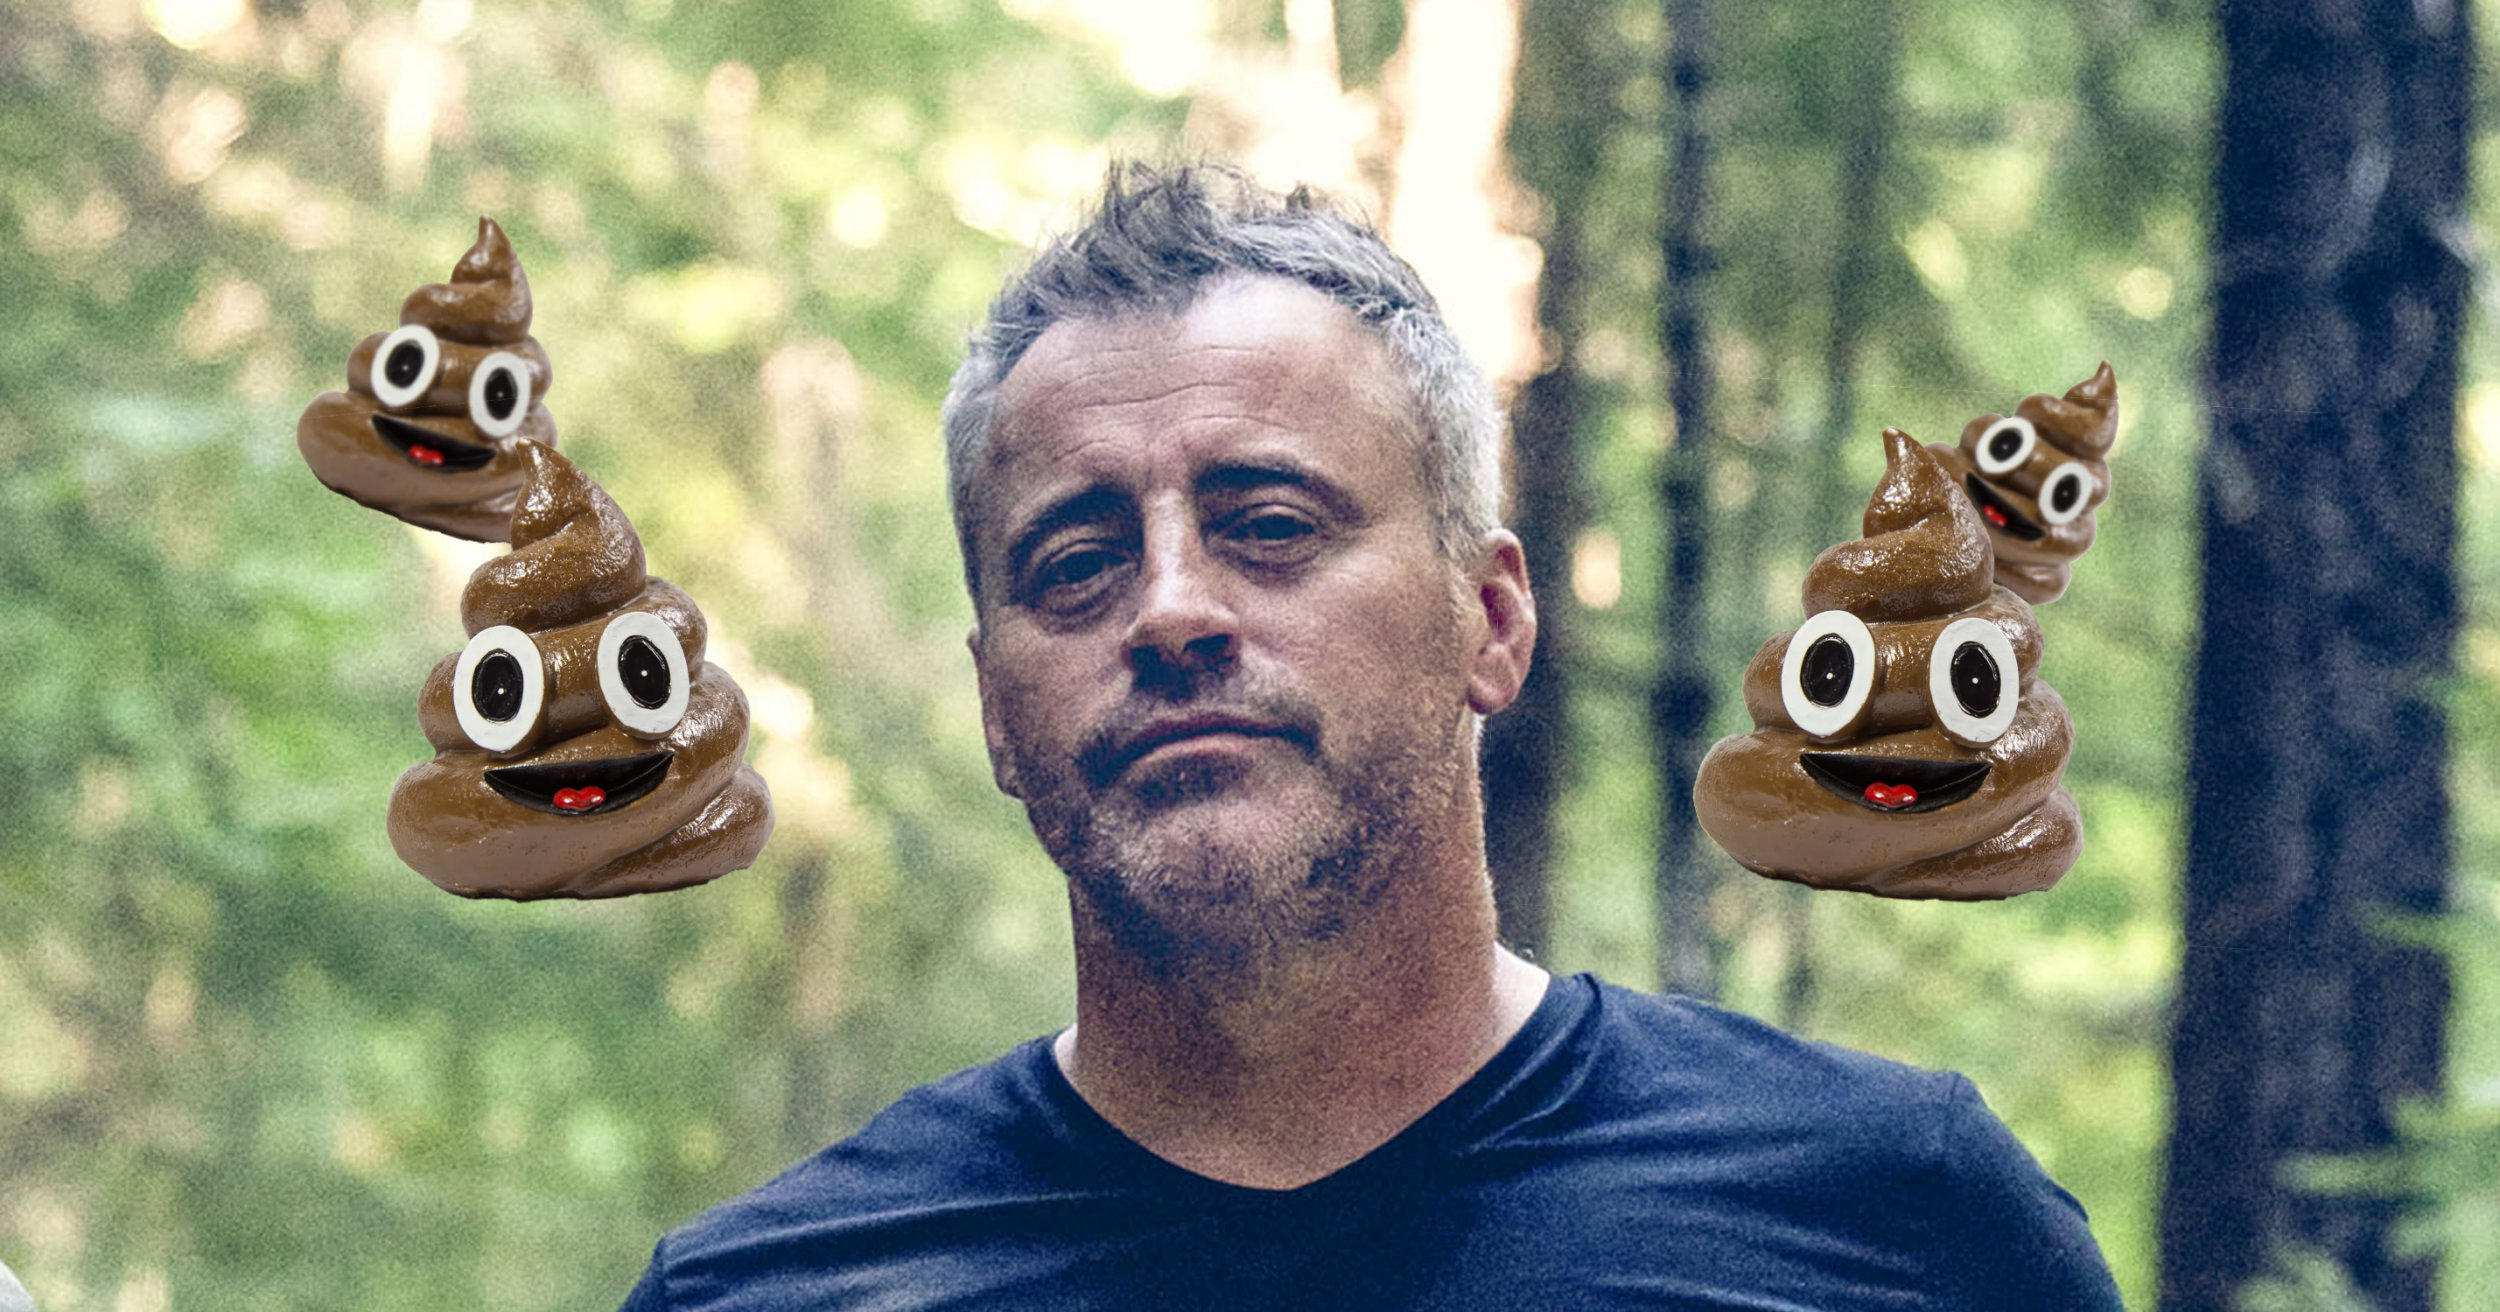 Top Gear viewers are up in arms over Matt LeBlanc sniffing 'Big Foot's sh*t'